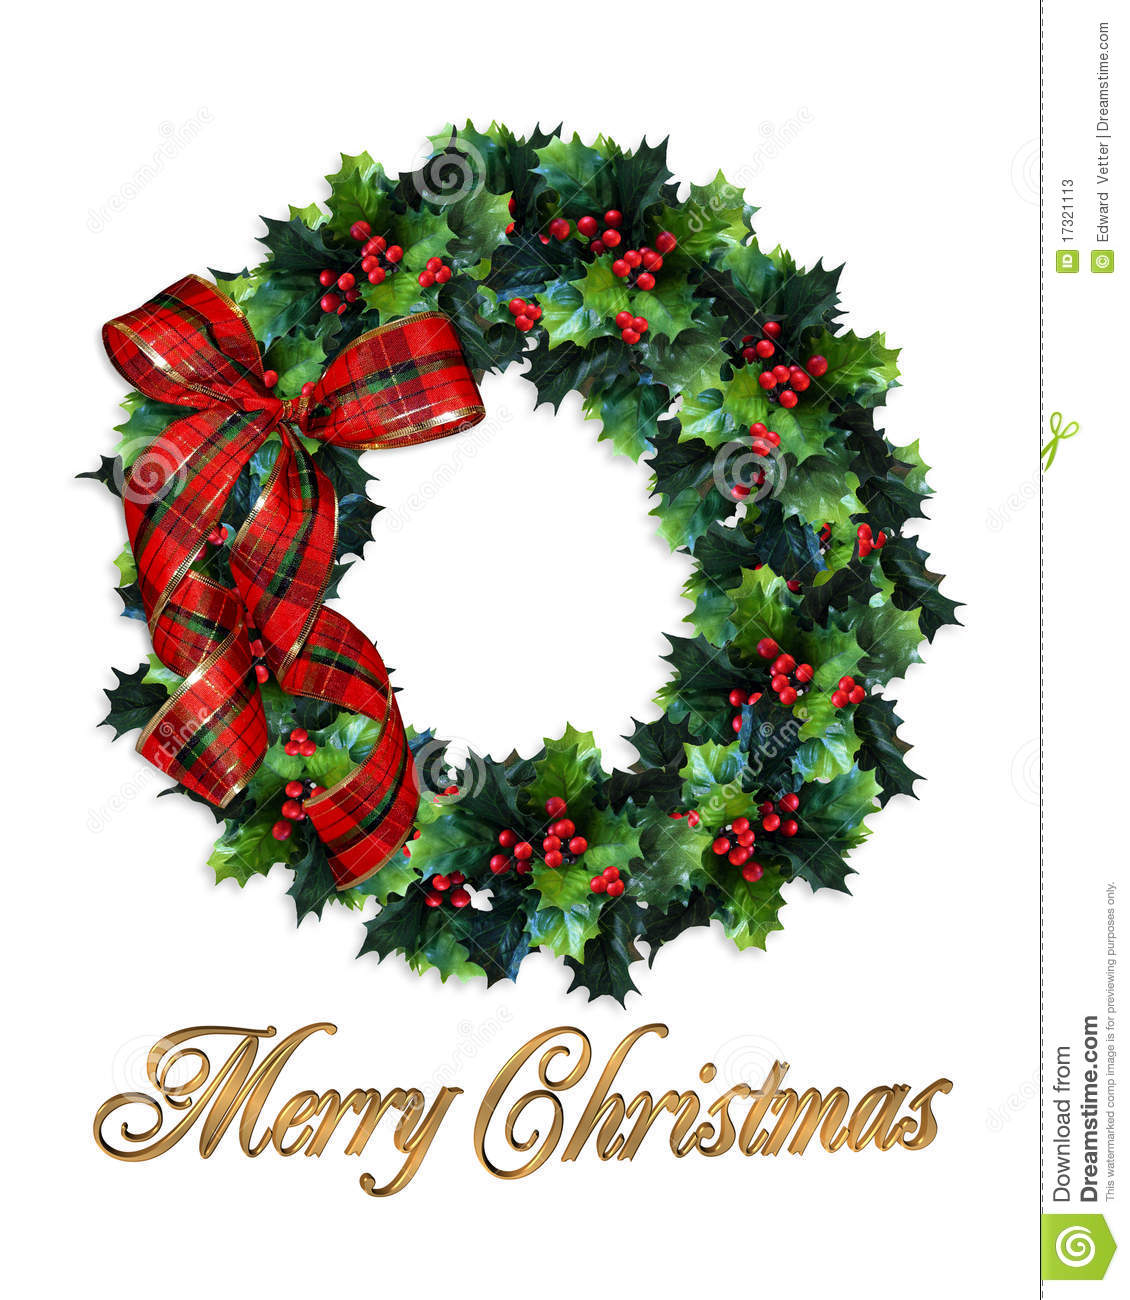 Christmas wreath clipart merry.